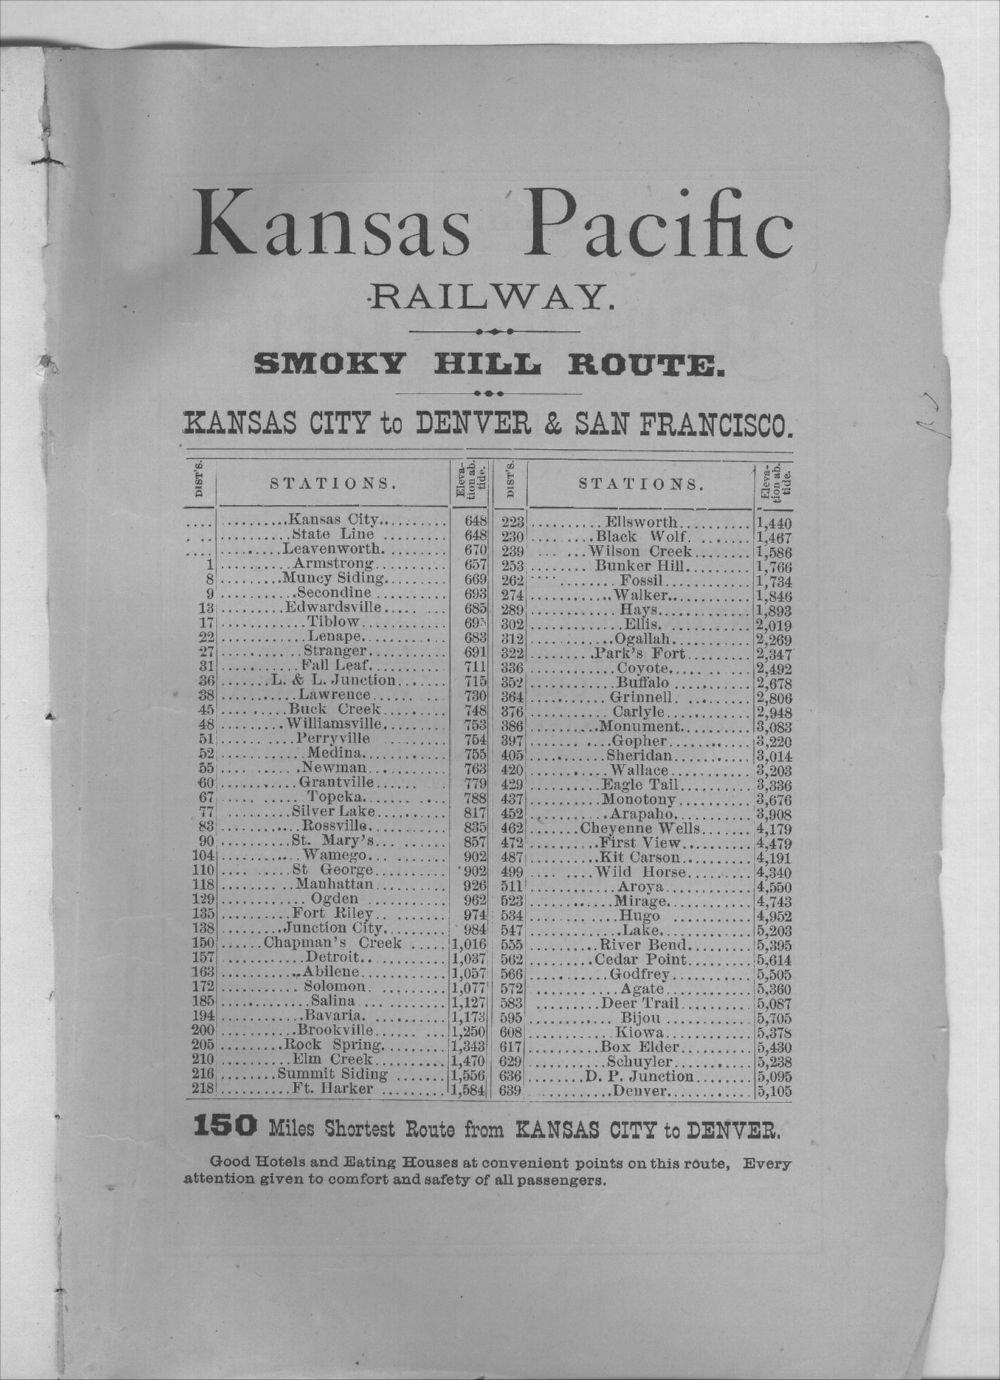 Emigrants' guide to the Kansas Pacific Railway lands - Inside Back Cover